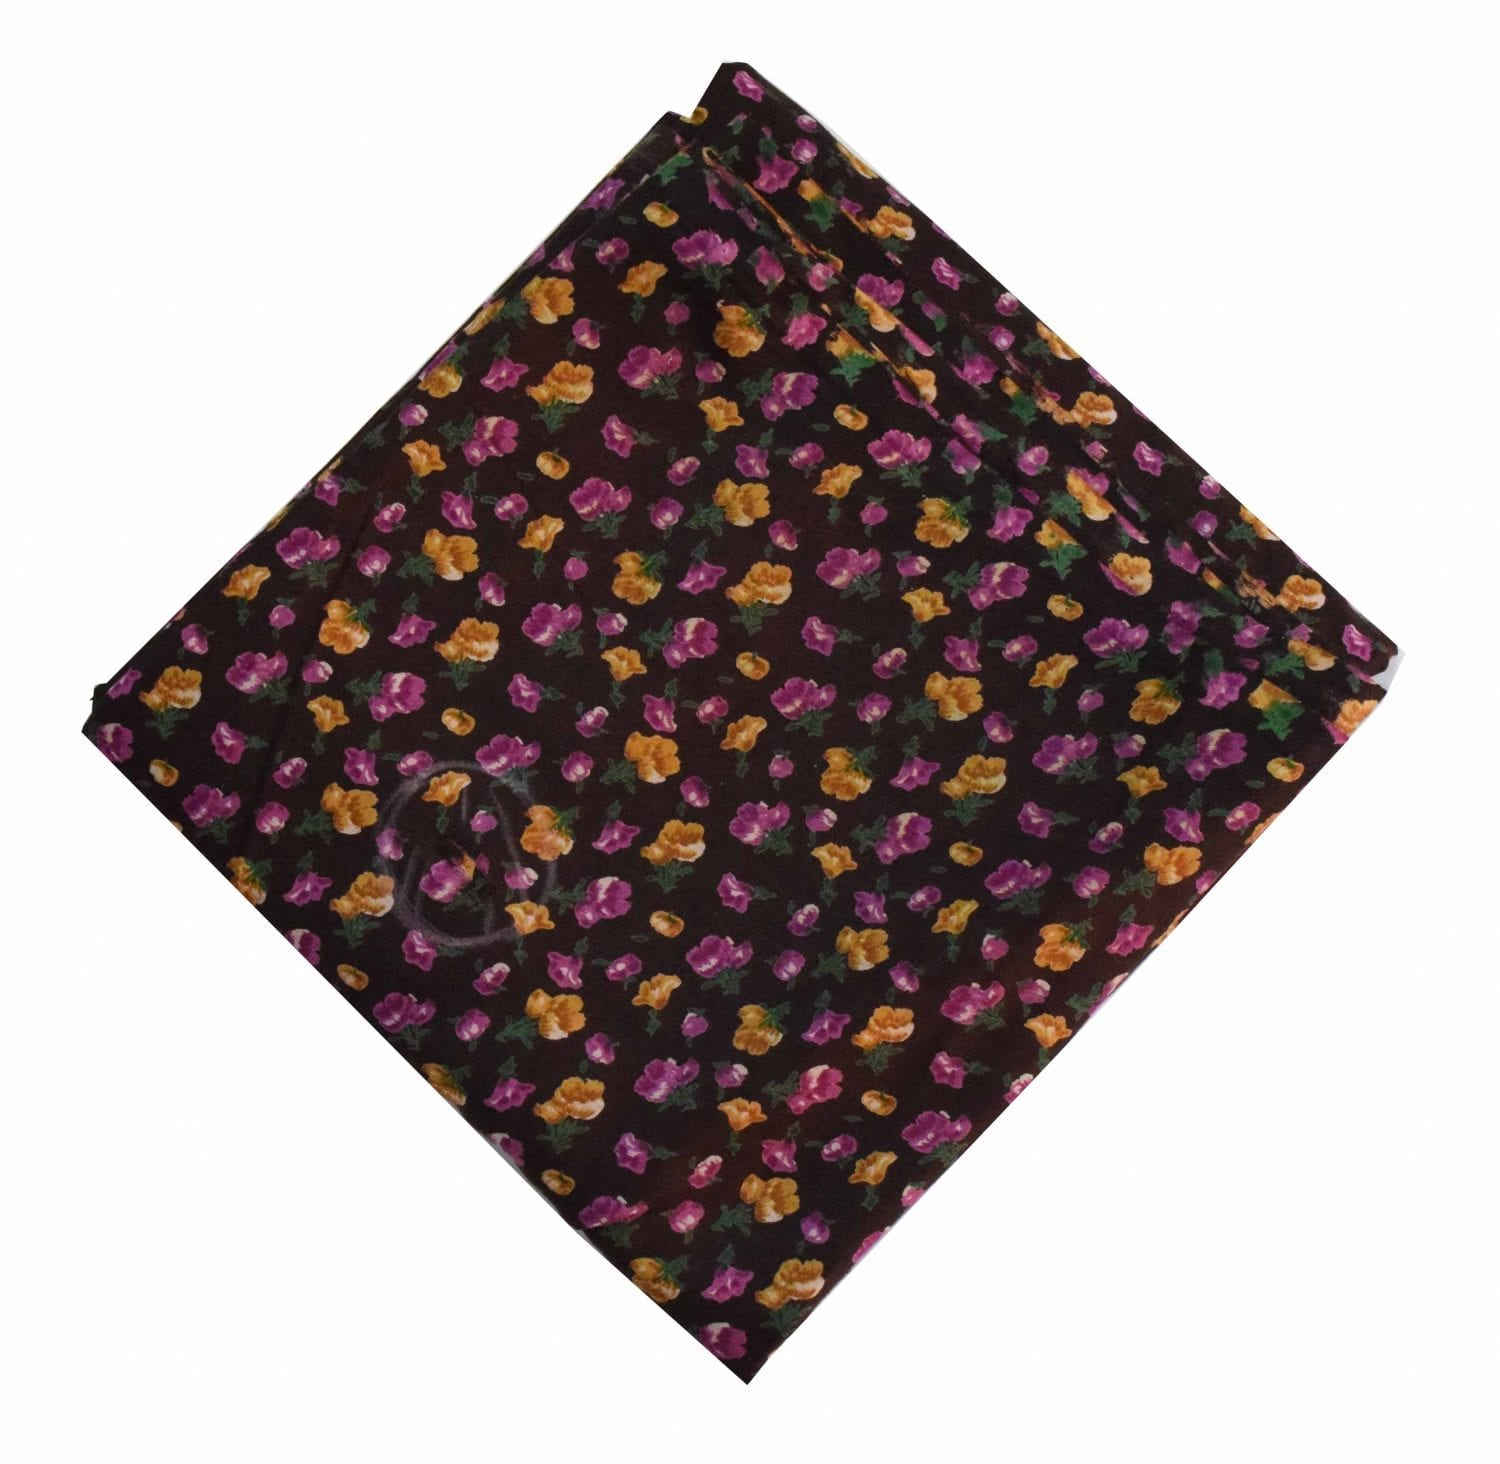 Coffee Multicolour allover Printed 100% Pure Cotton Fabric PC462 1